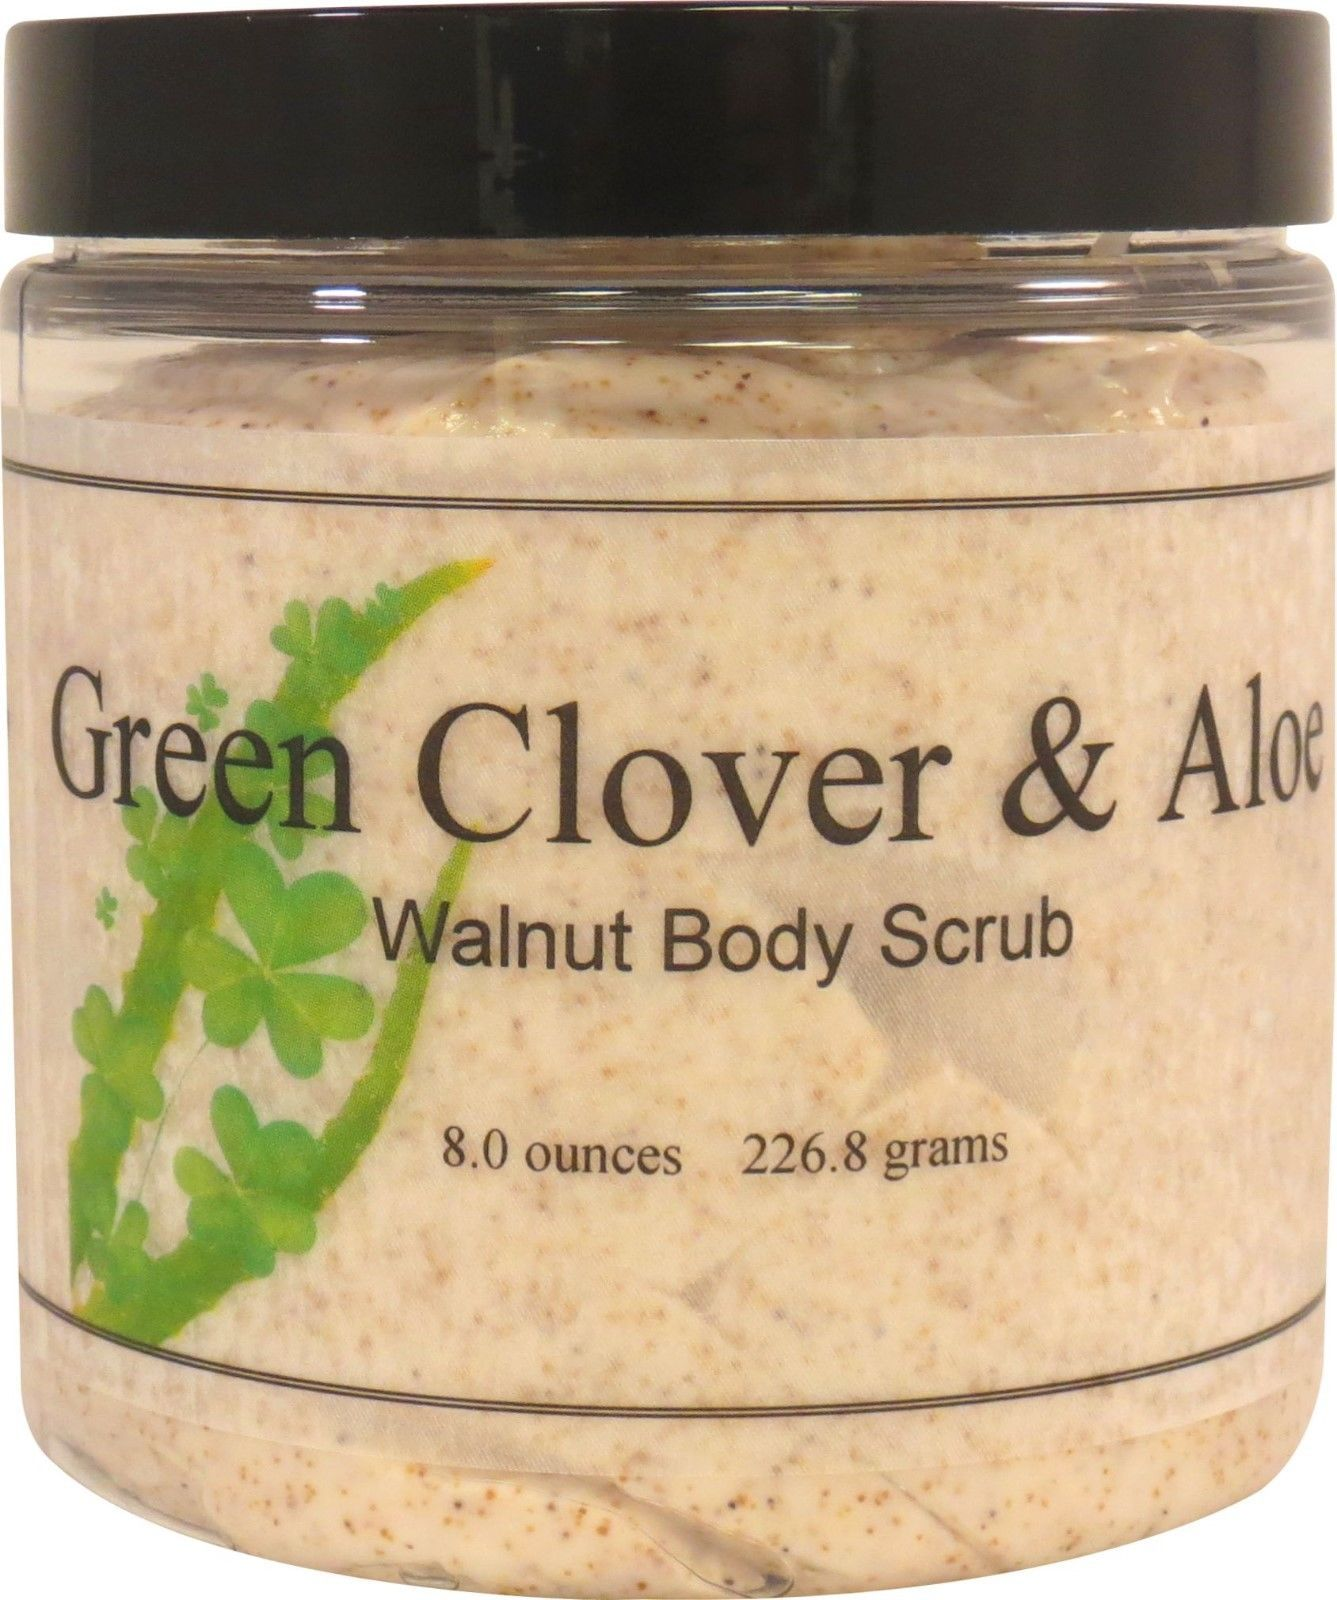 Green Clover and Aloe Walnut Body Scrub